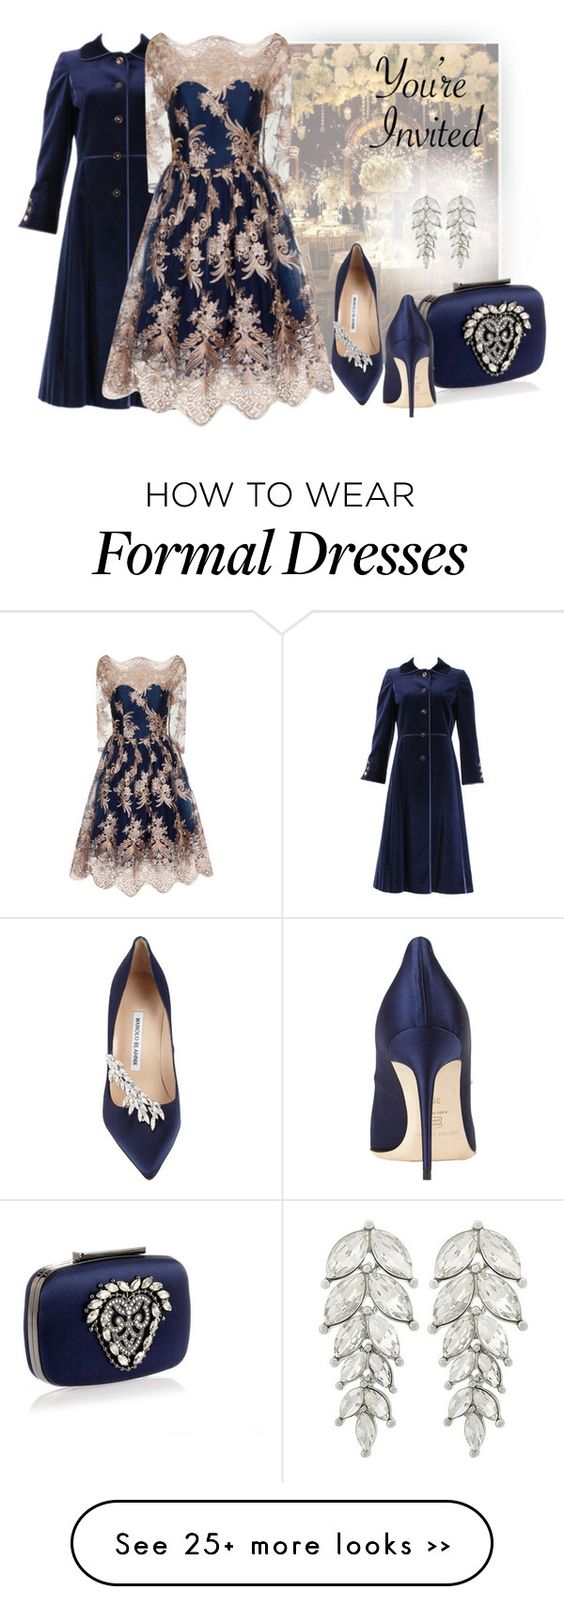 """""""Formal Affair"""" by shoppe23online on Polyvore featuring LOTTA, Louis Féraud, Manolo Blahnik, Chi Chi, CelebrityWedding and FabulousFashionAccessories"""